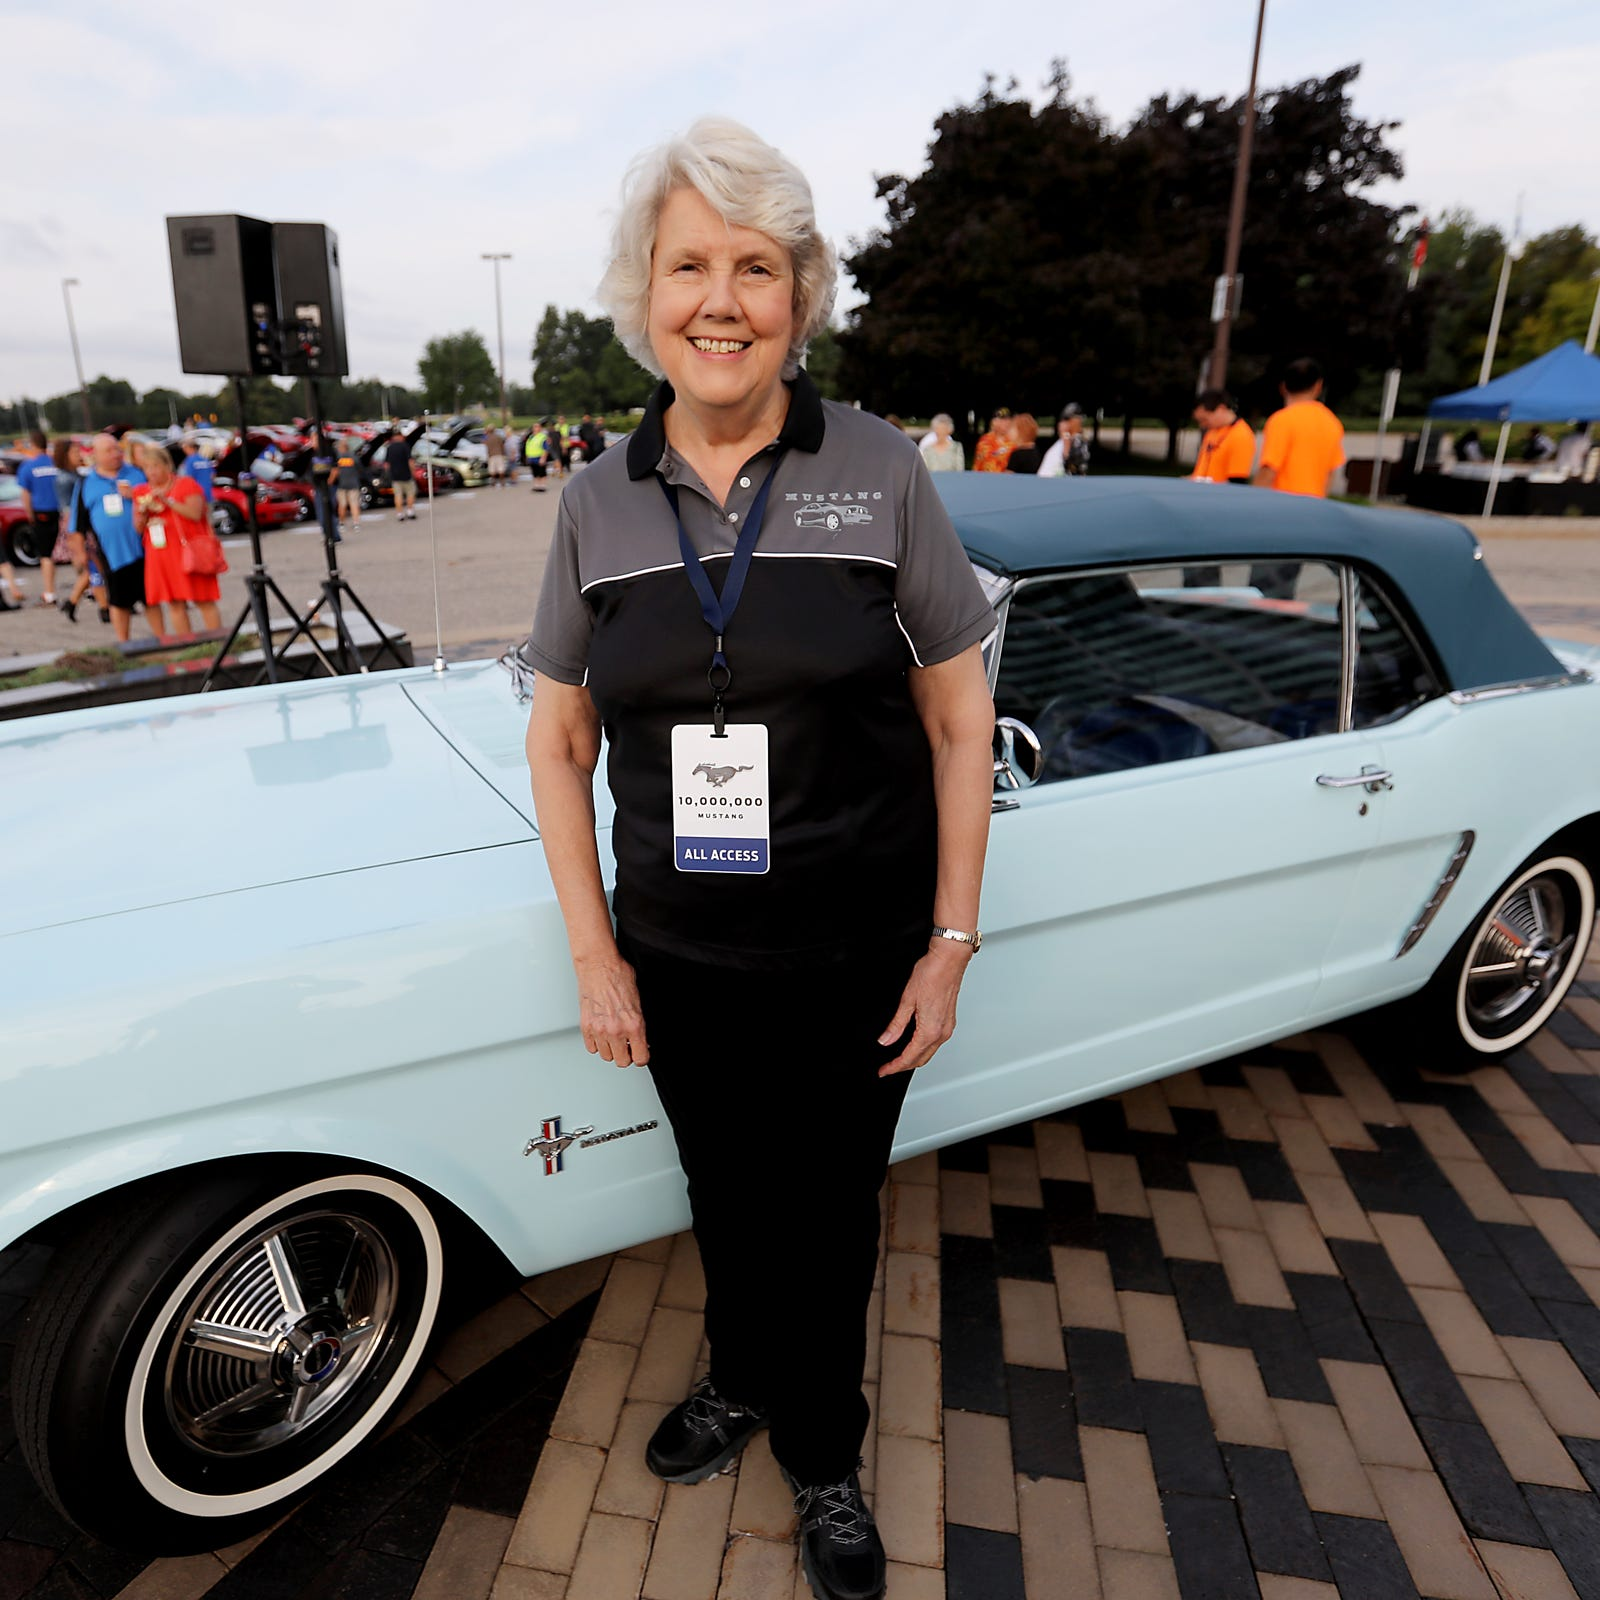 Gail Wise, 76, of Park Ridge, Illinois is the first buyer of a 1964 Ford Mustang. She and the car are at Ford world headquarters in Dearborn celebrating the building of 10,000,000 Mustangs on Wed., Aug 8, 2018.